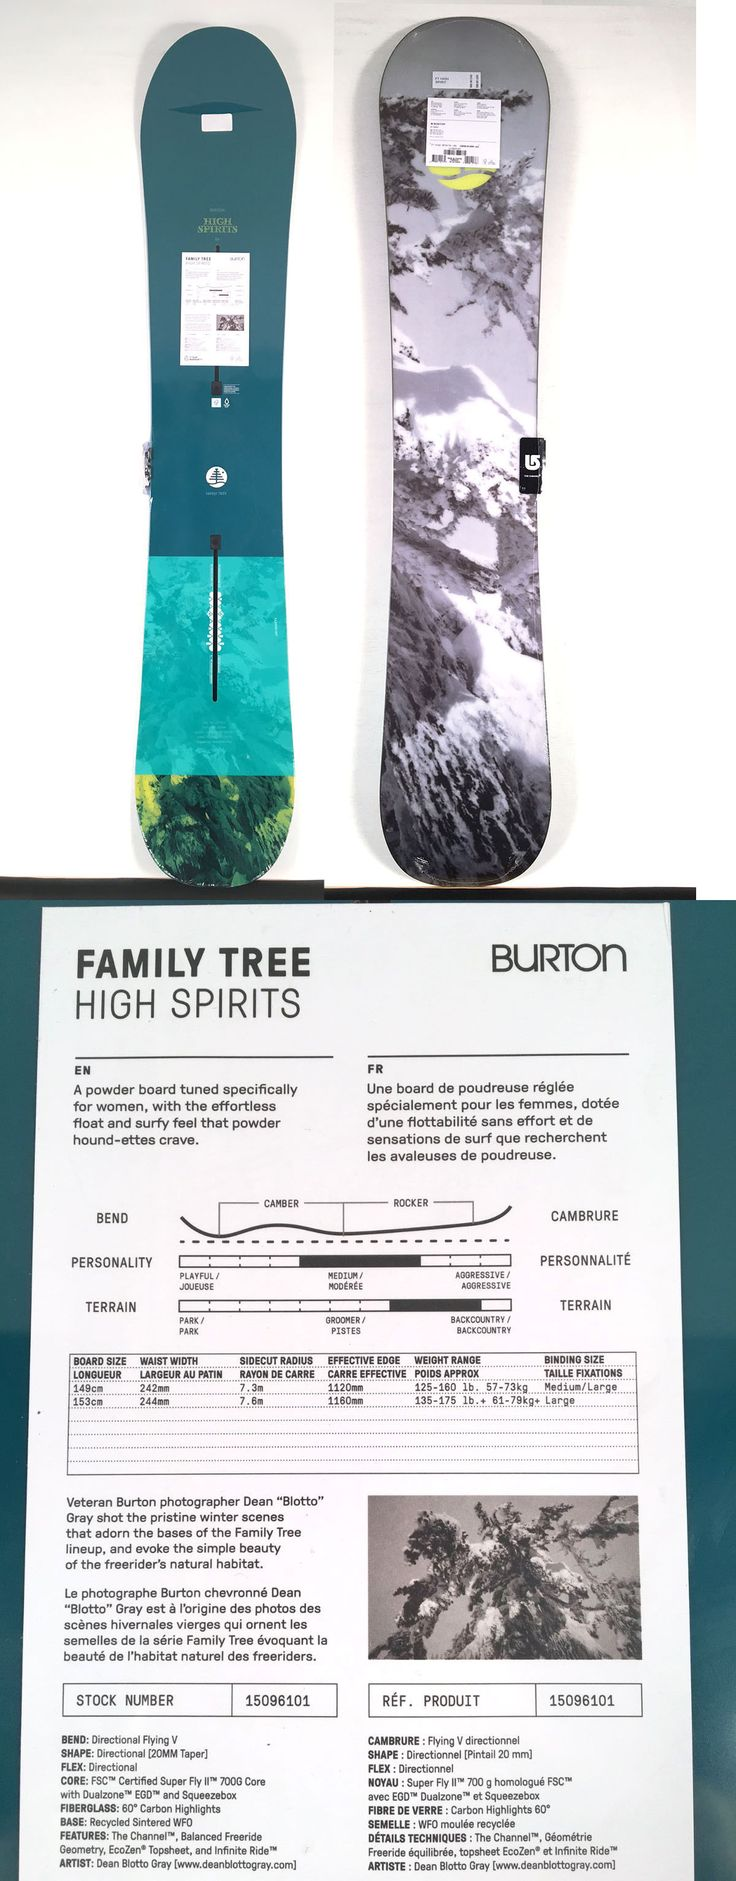 Snowboards 93825: Brand New 2017 Burton High Spirits Family Tree Snowboard 153 Cm 153Cm Women 17 -> BUY IT NOW ONLY: $359.95 on eBay!